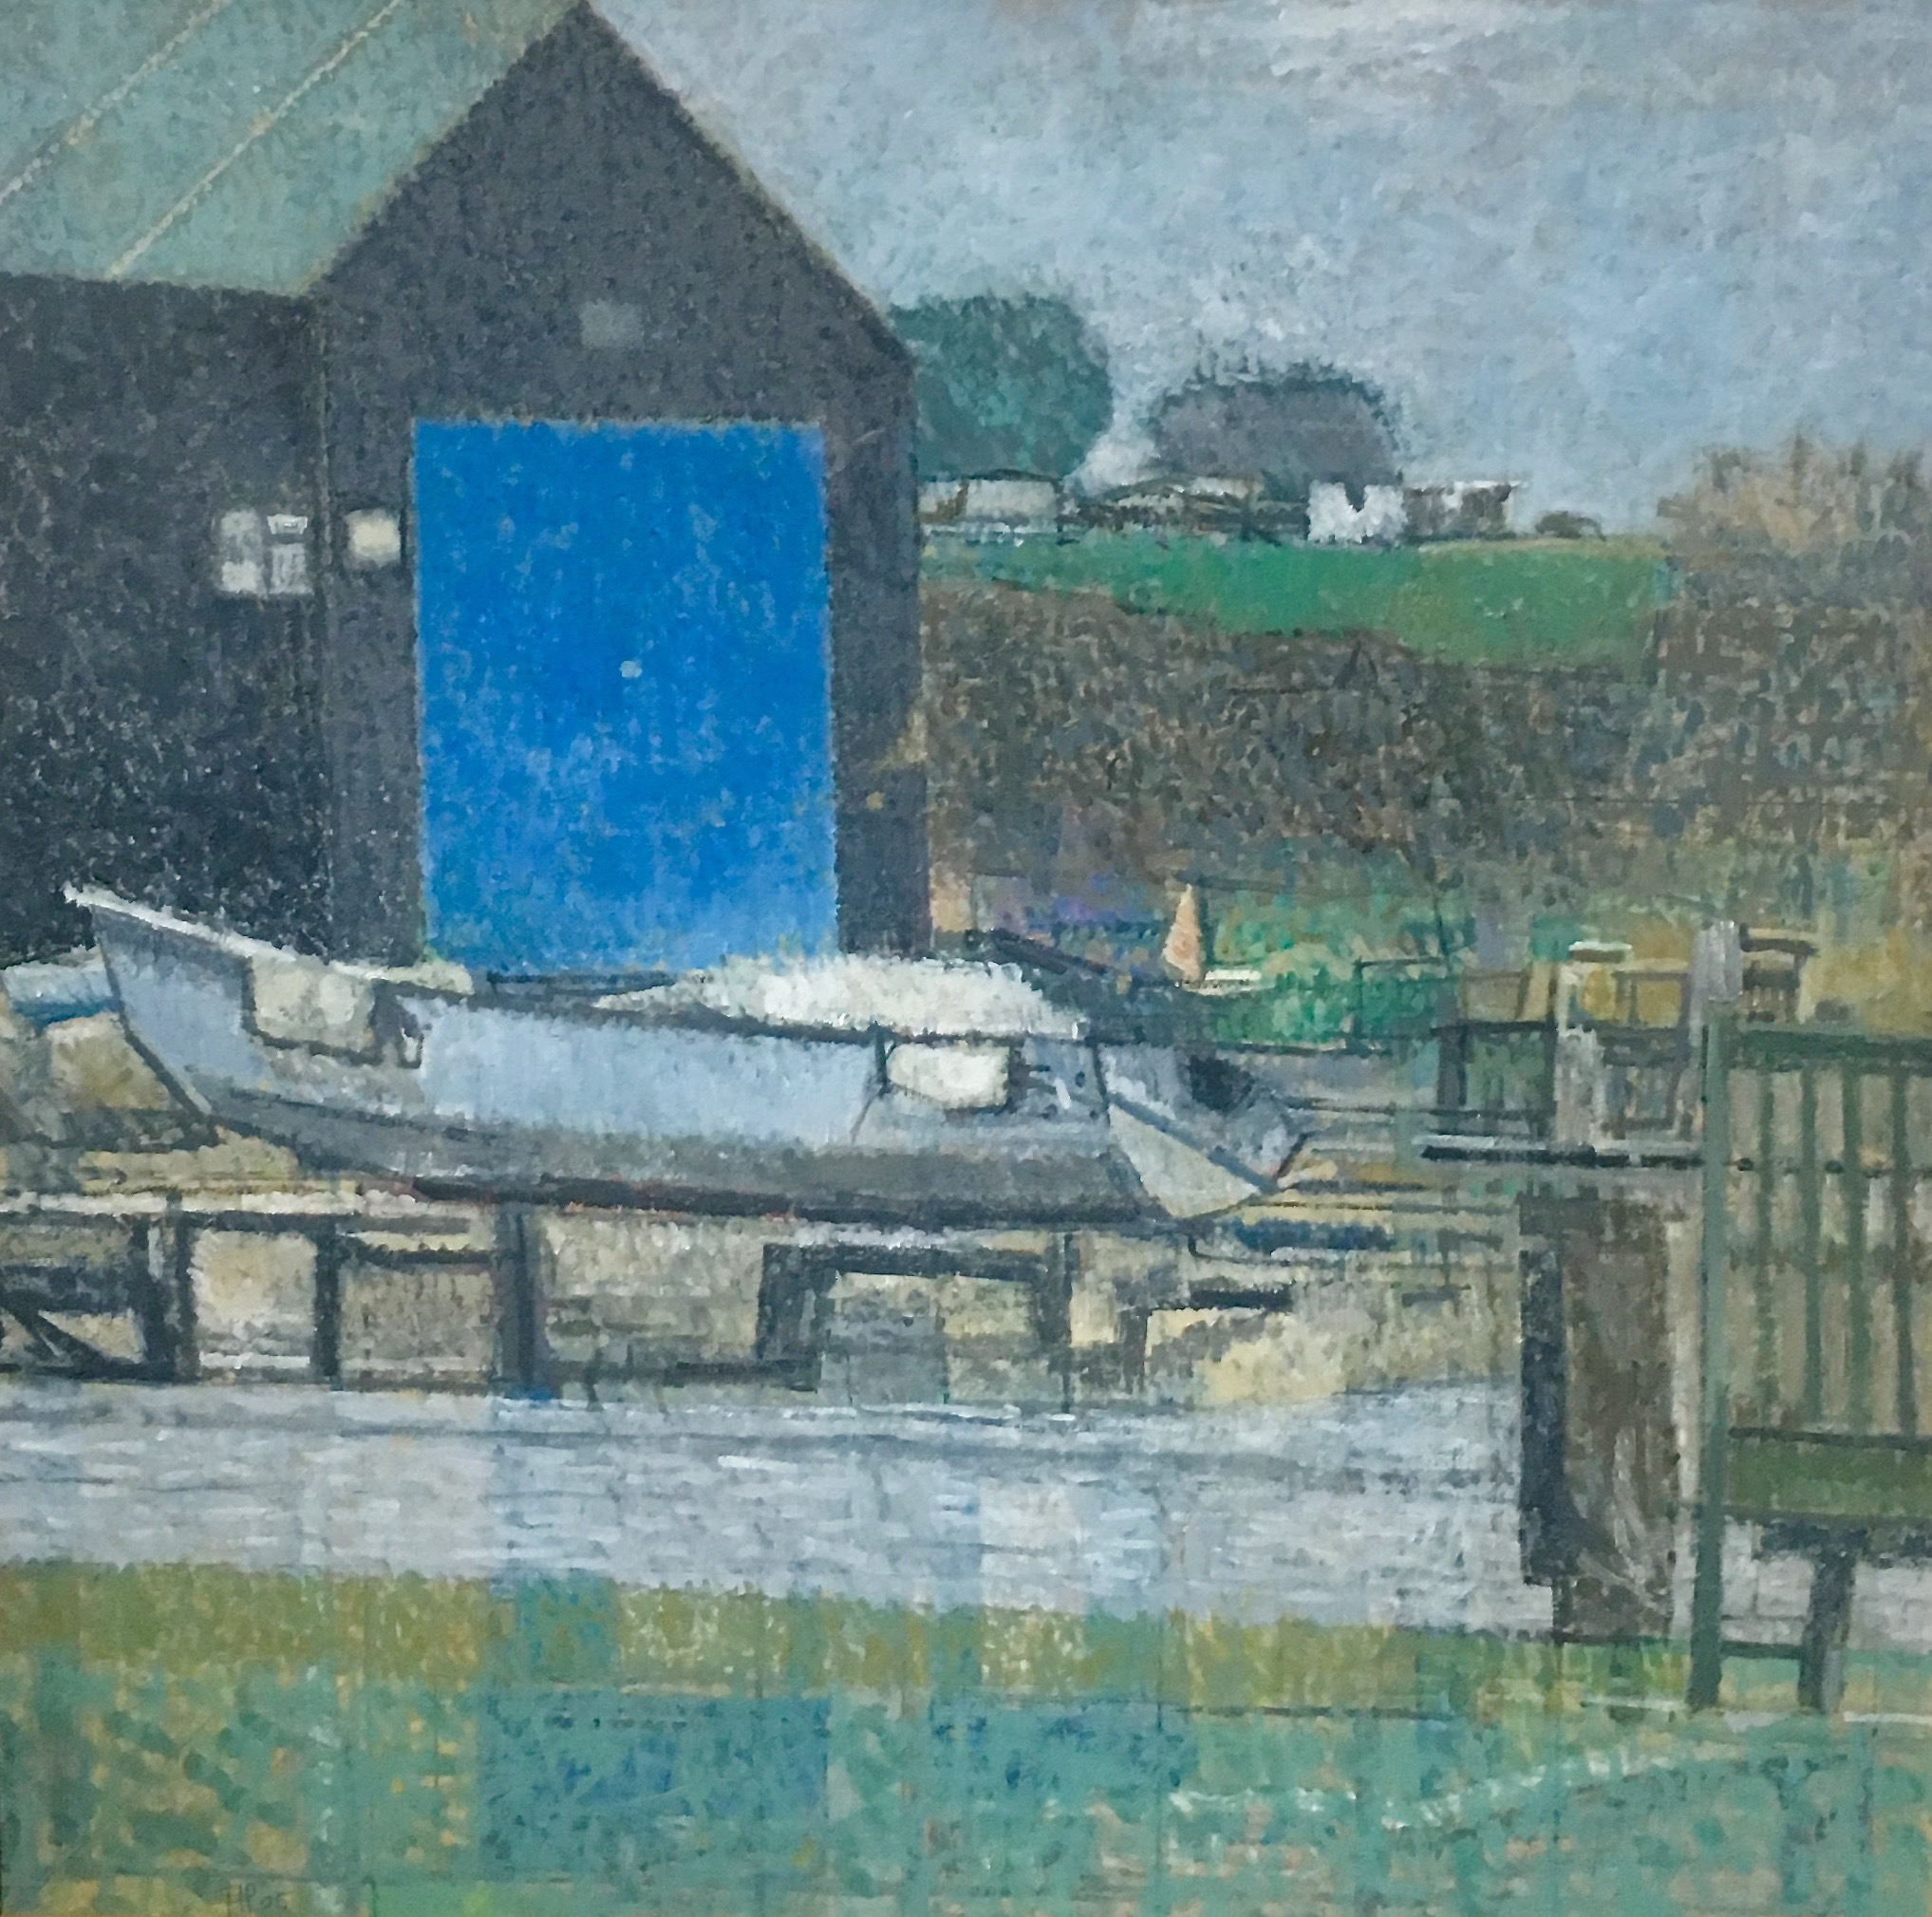 Andrew Pringle, Canoe Club Southwold 06, oil on board 19x19 ins